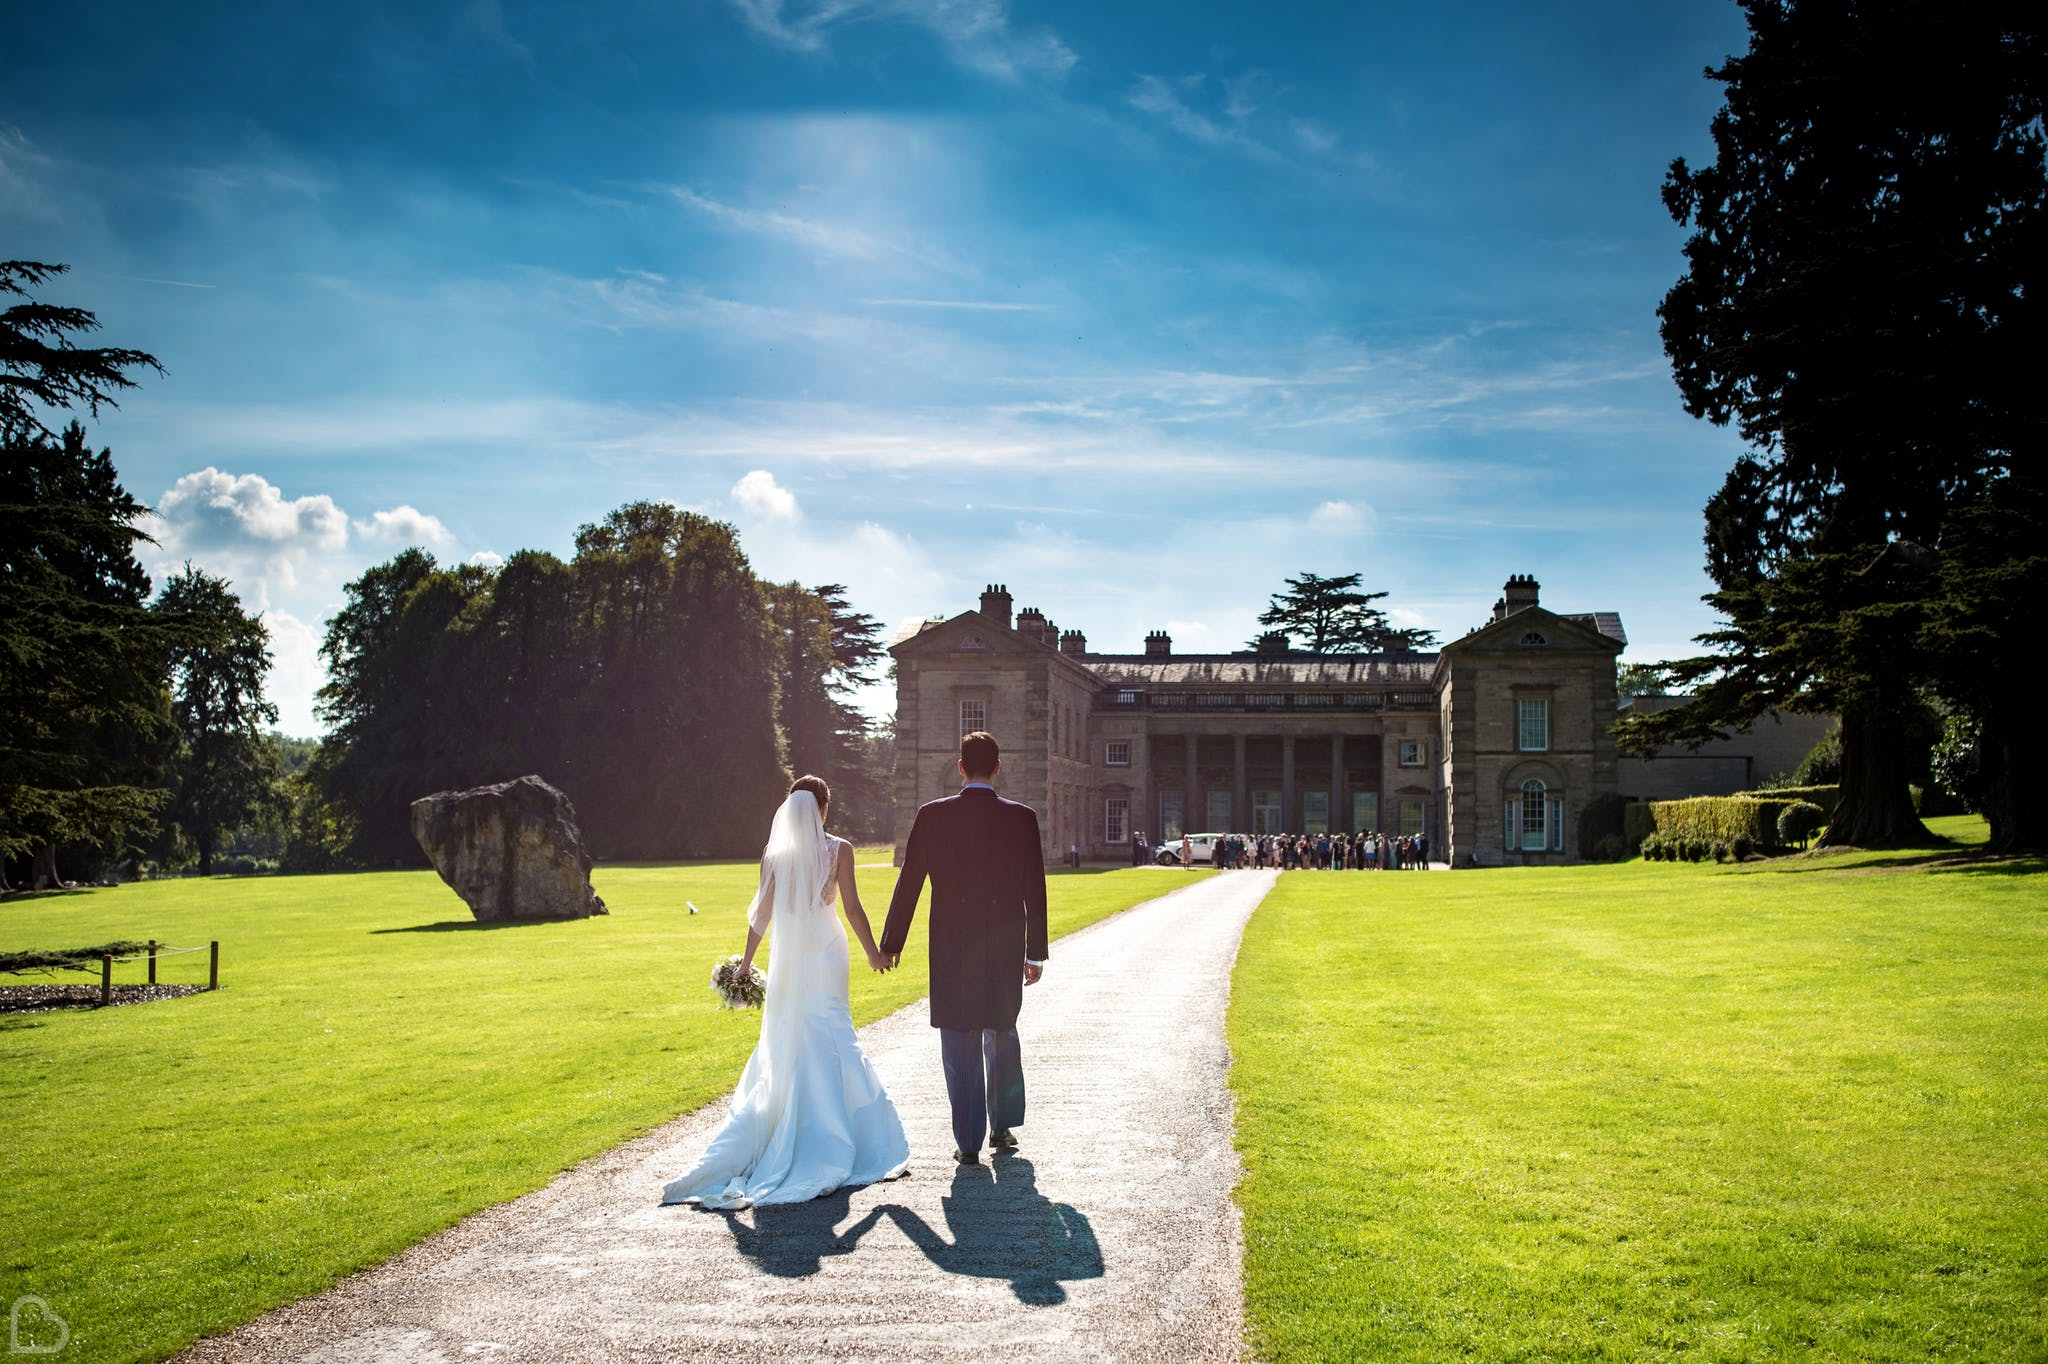 Compton Verney House newlyweds greeted by guests.